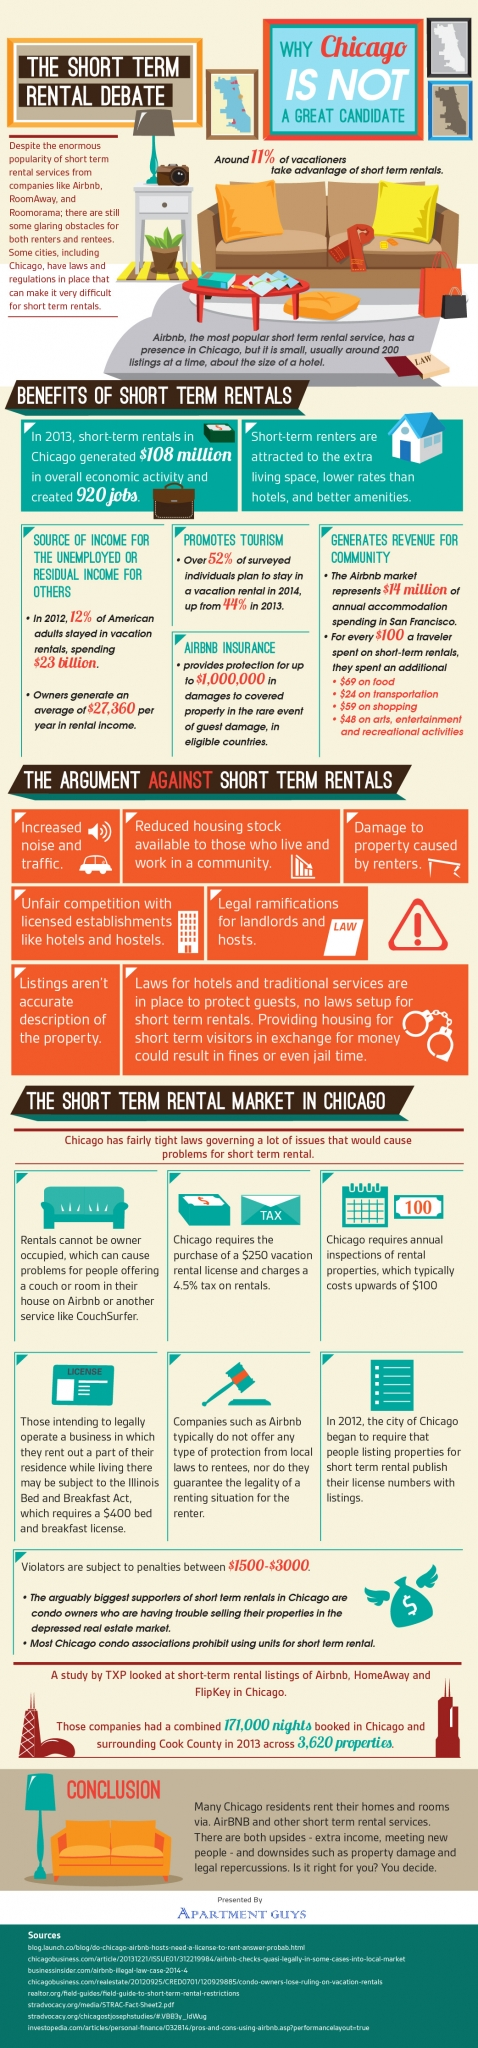 Short Term Rentals In Chicago